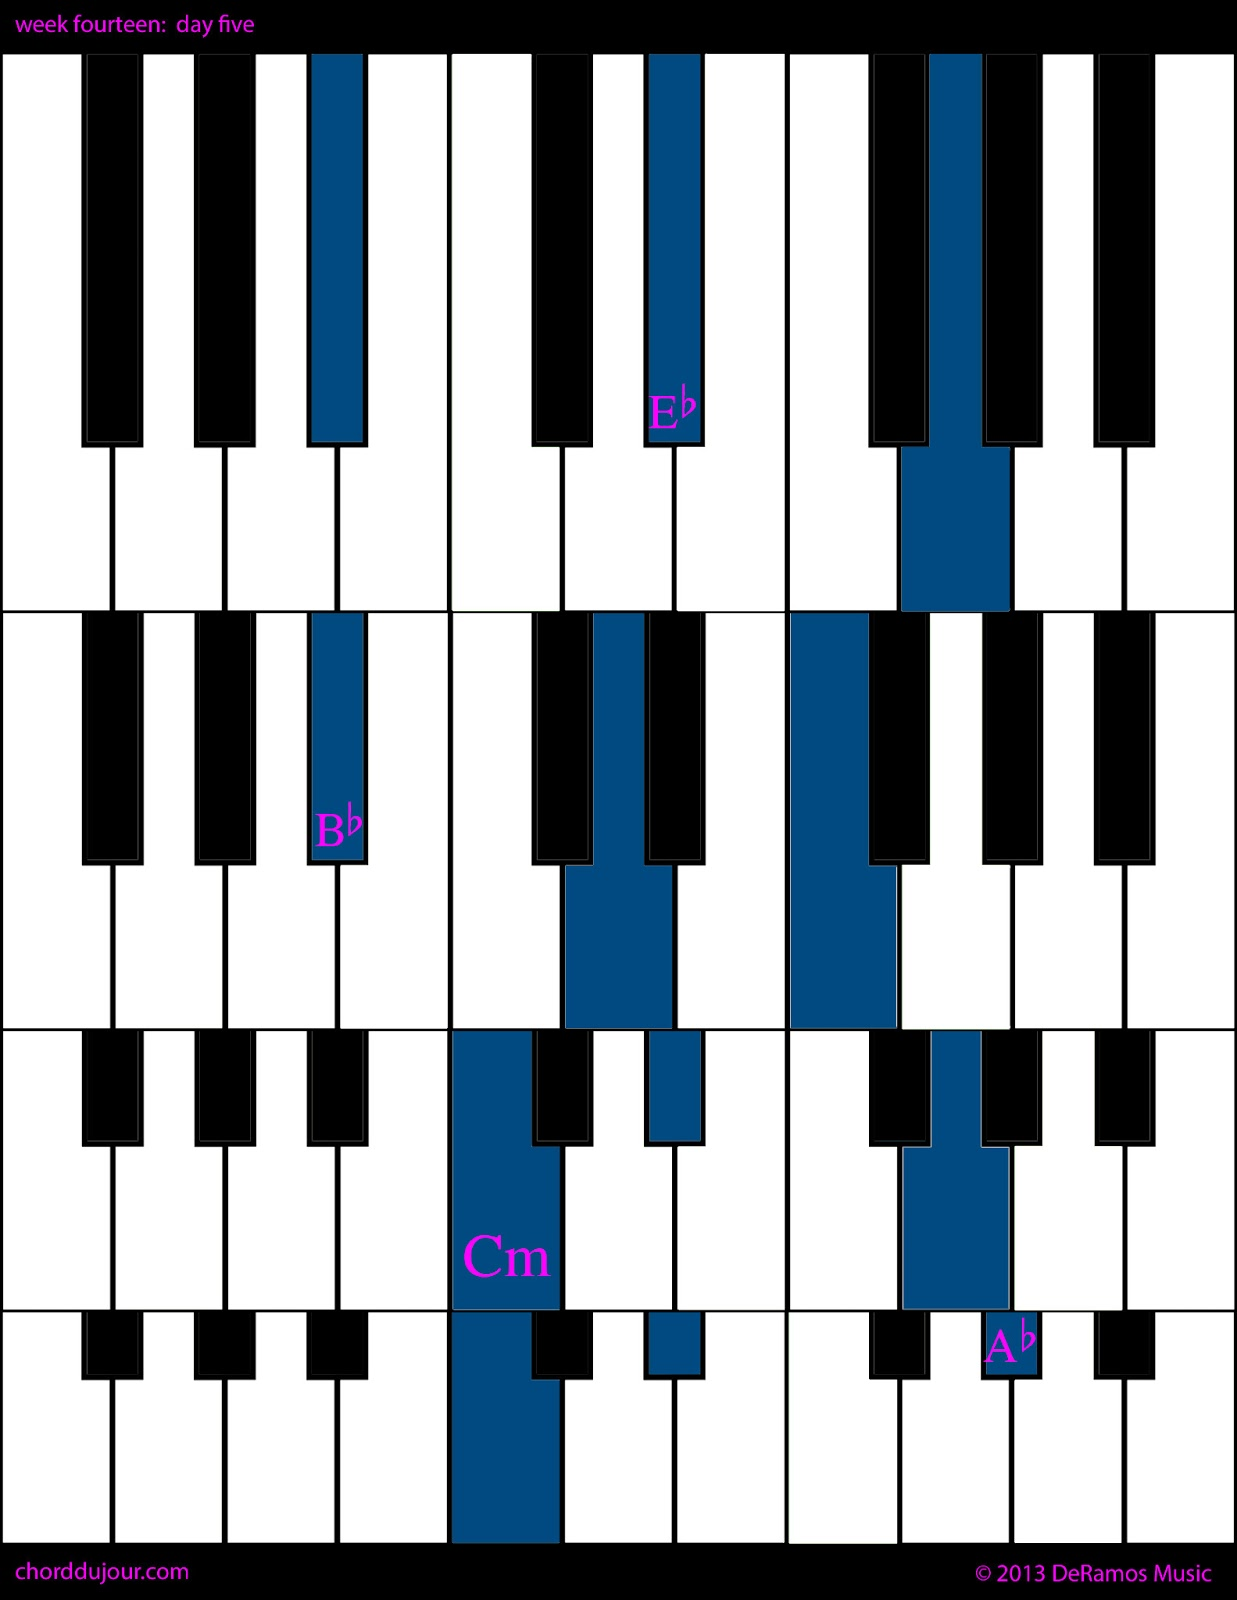 Chord du jour four chords three more chords c minor four chords three more chords c minor pentatonic scale for keyboard next weeks facebook preview hexwebz Choice Image